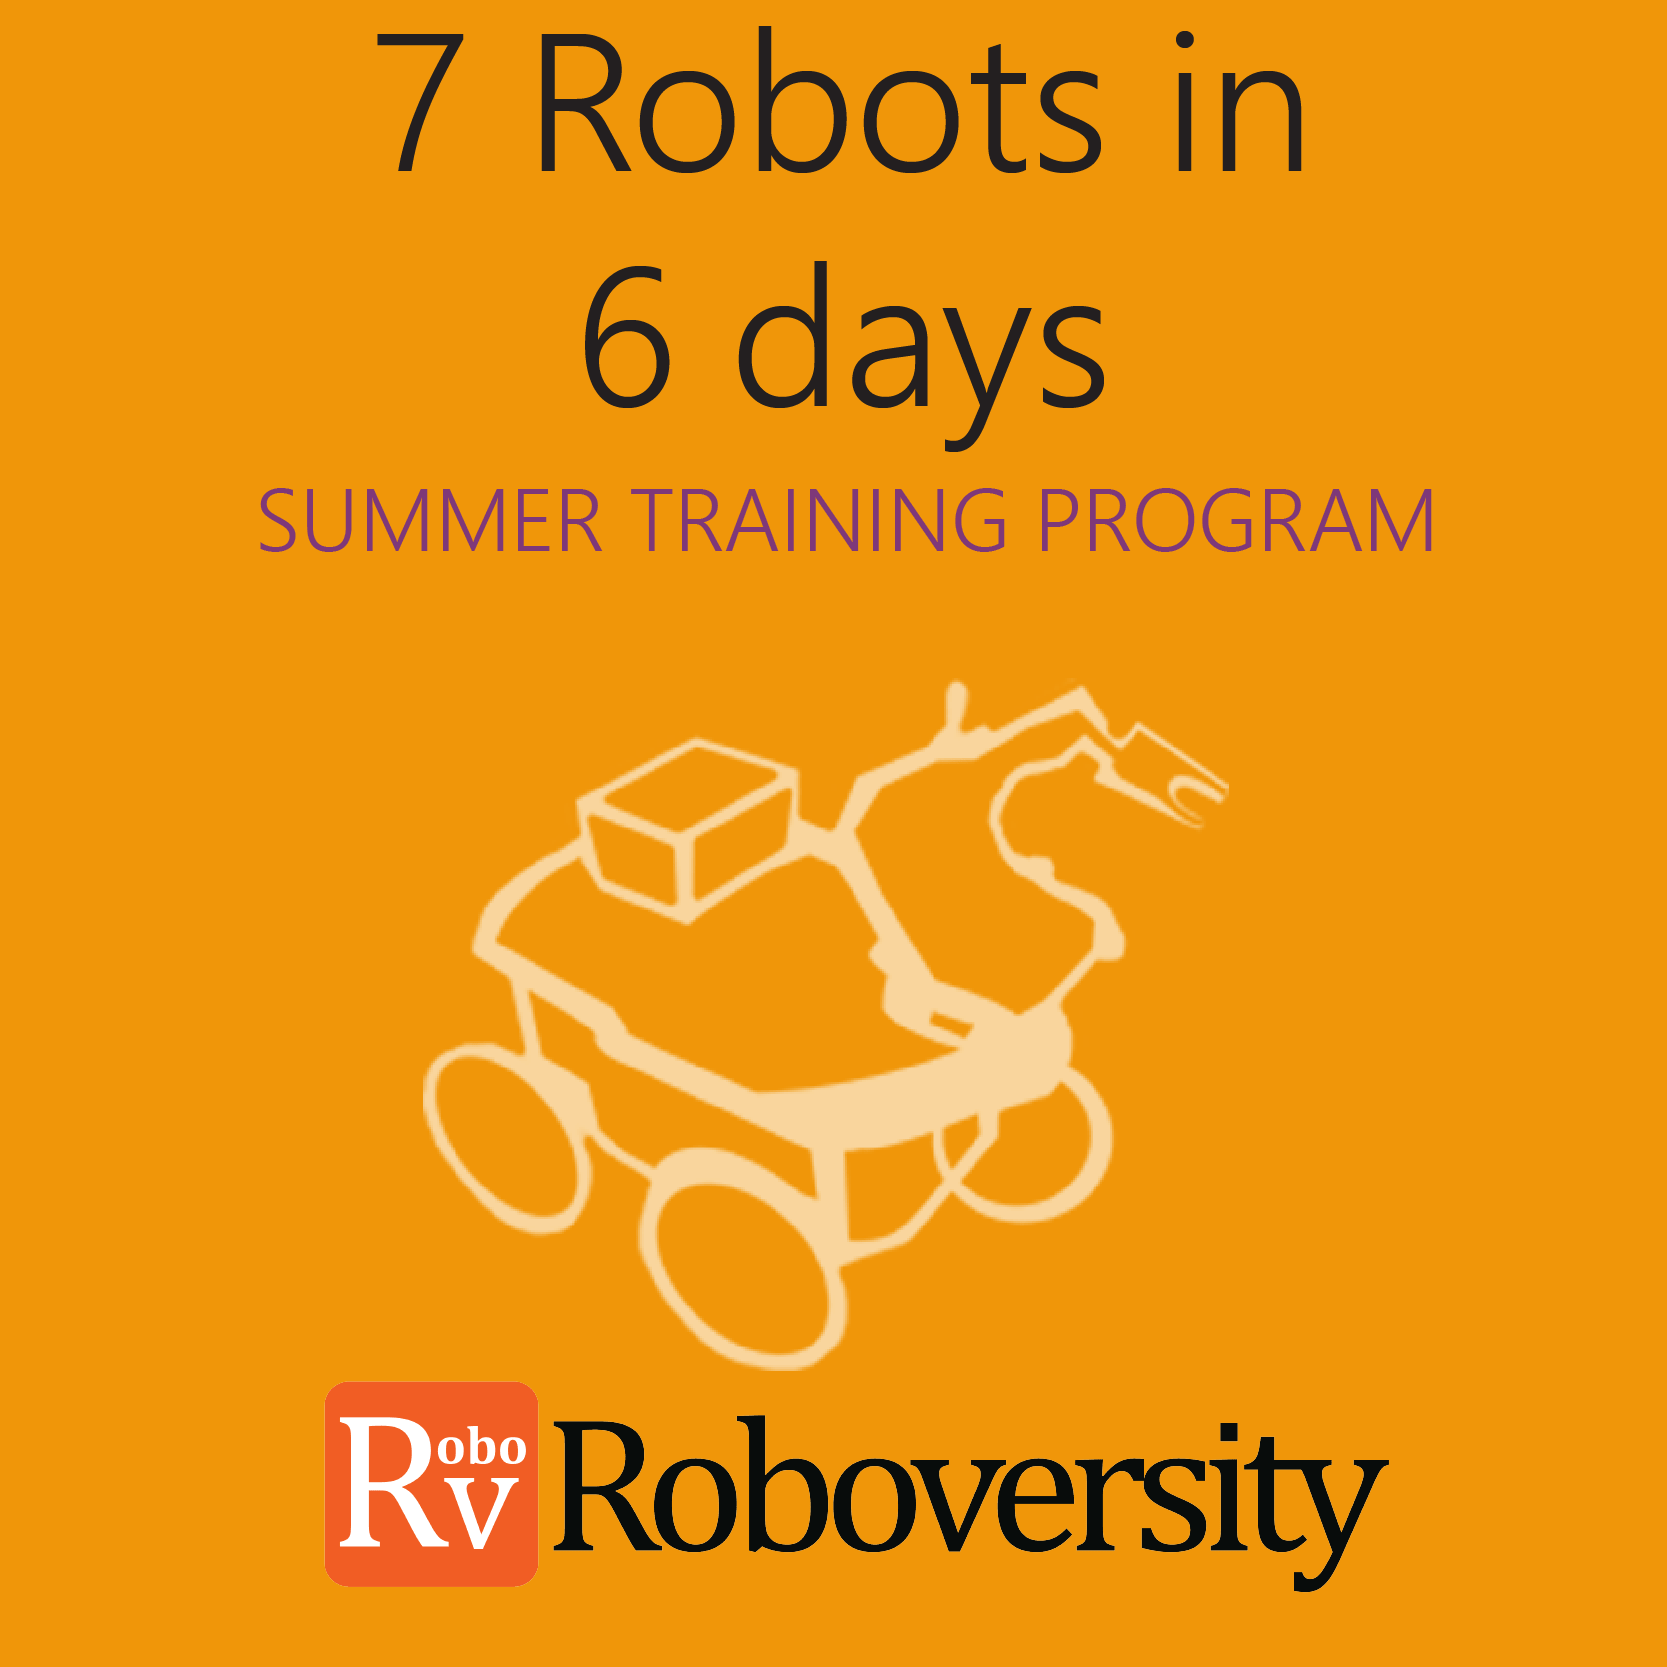 Summer Training Program in Robotics - 7 Robots in 6 Days  at Skyfi Labs Center, Marathahalli Workshop